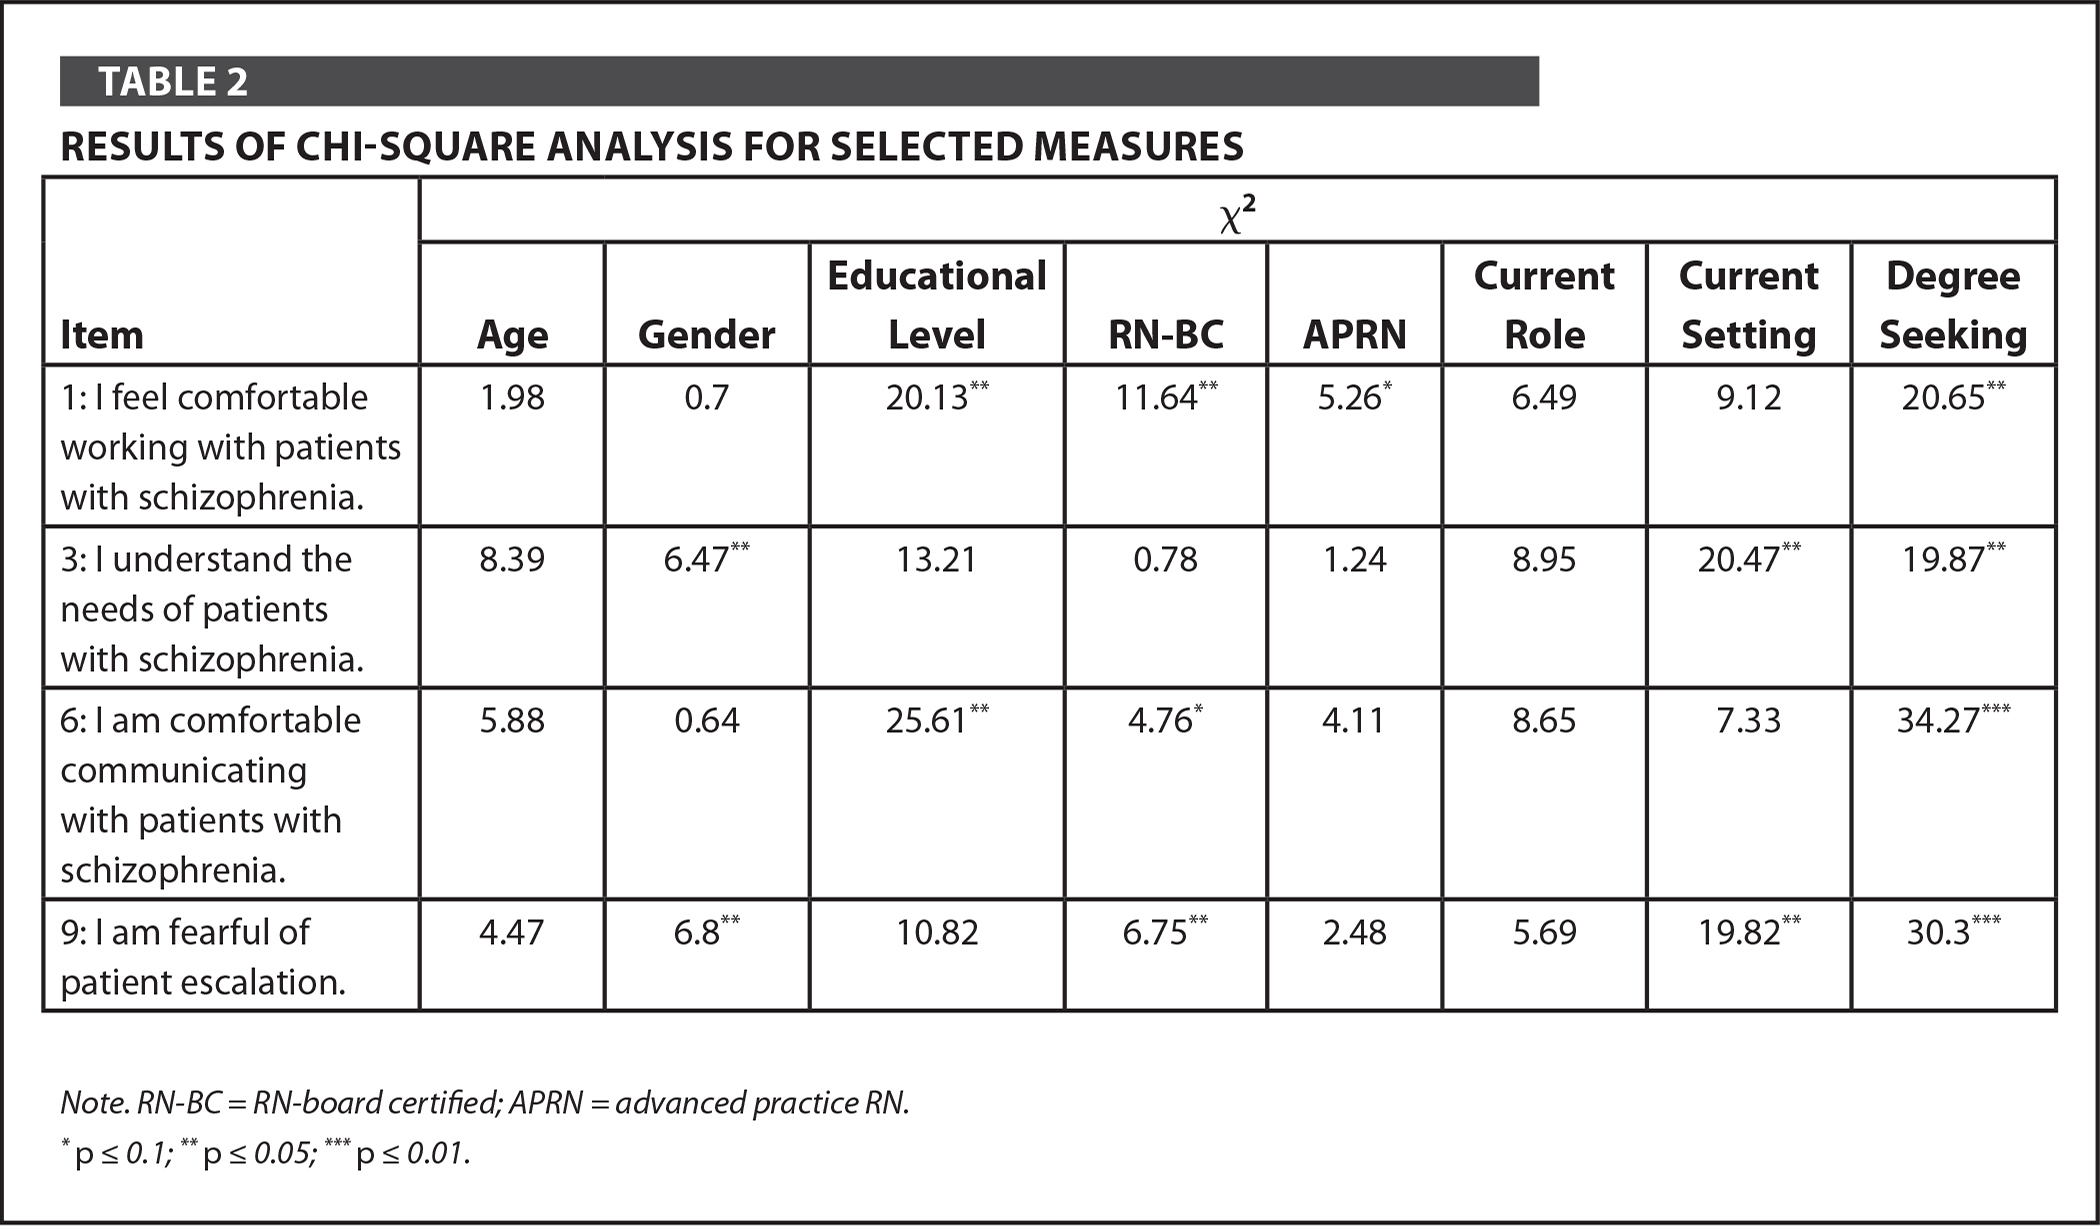 Results of Chi-Square Analysis for Selected Measures